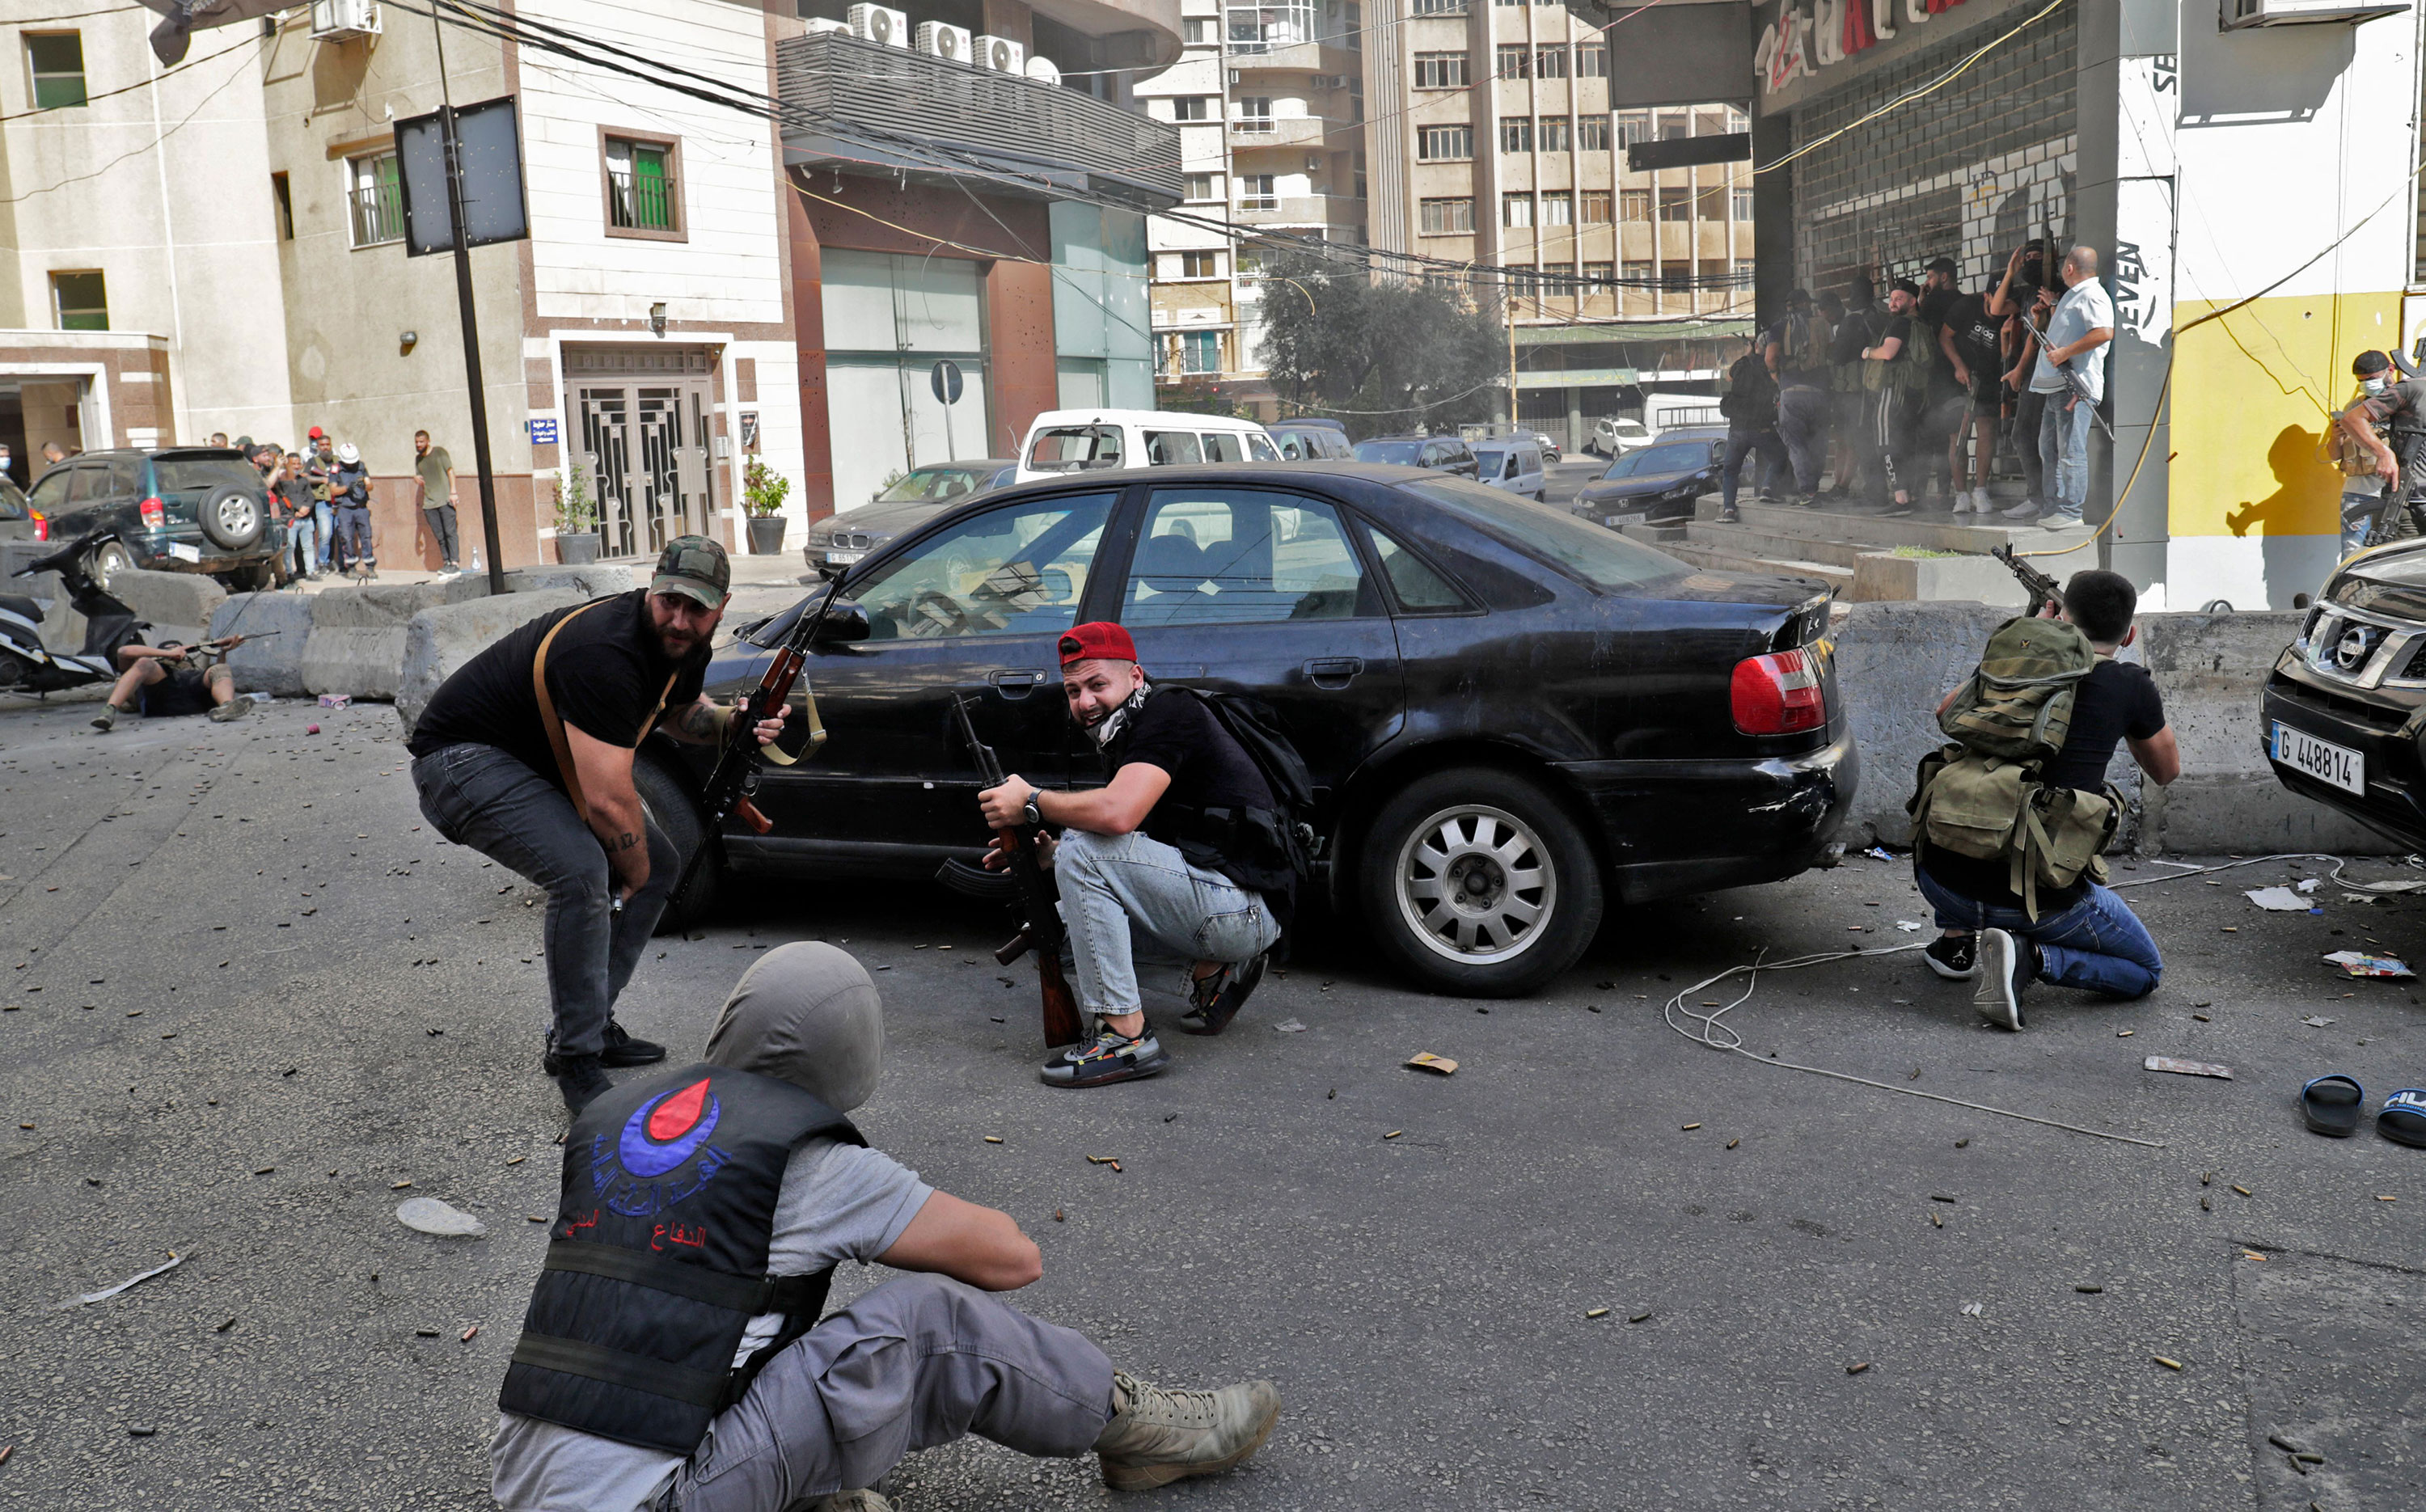 Fighters from the Hezbollah and Amal movements are seen during clashes in Beirut on Thursday.